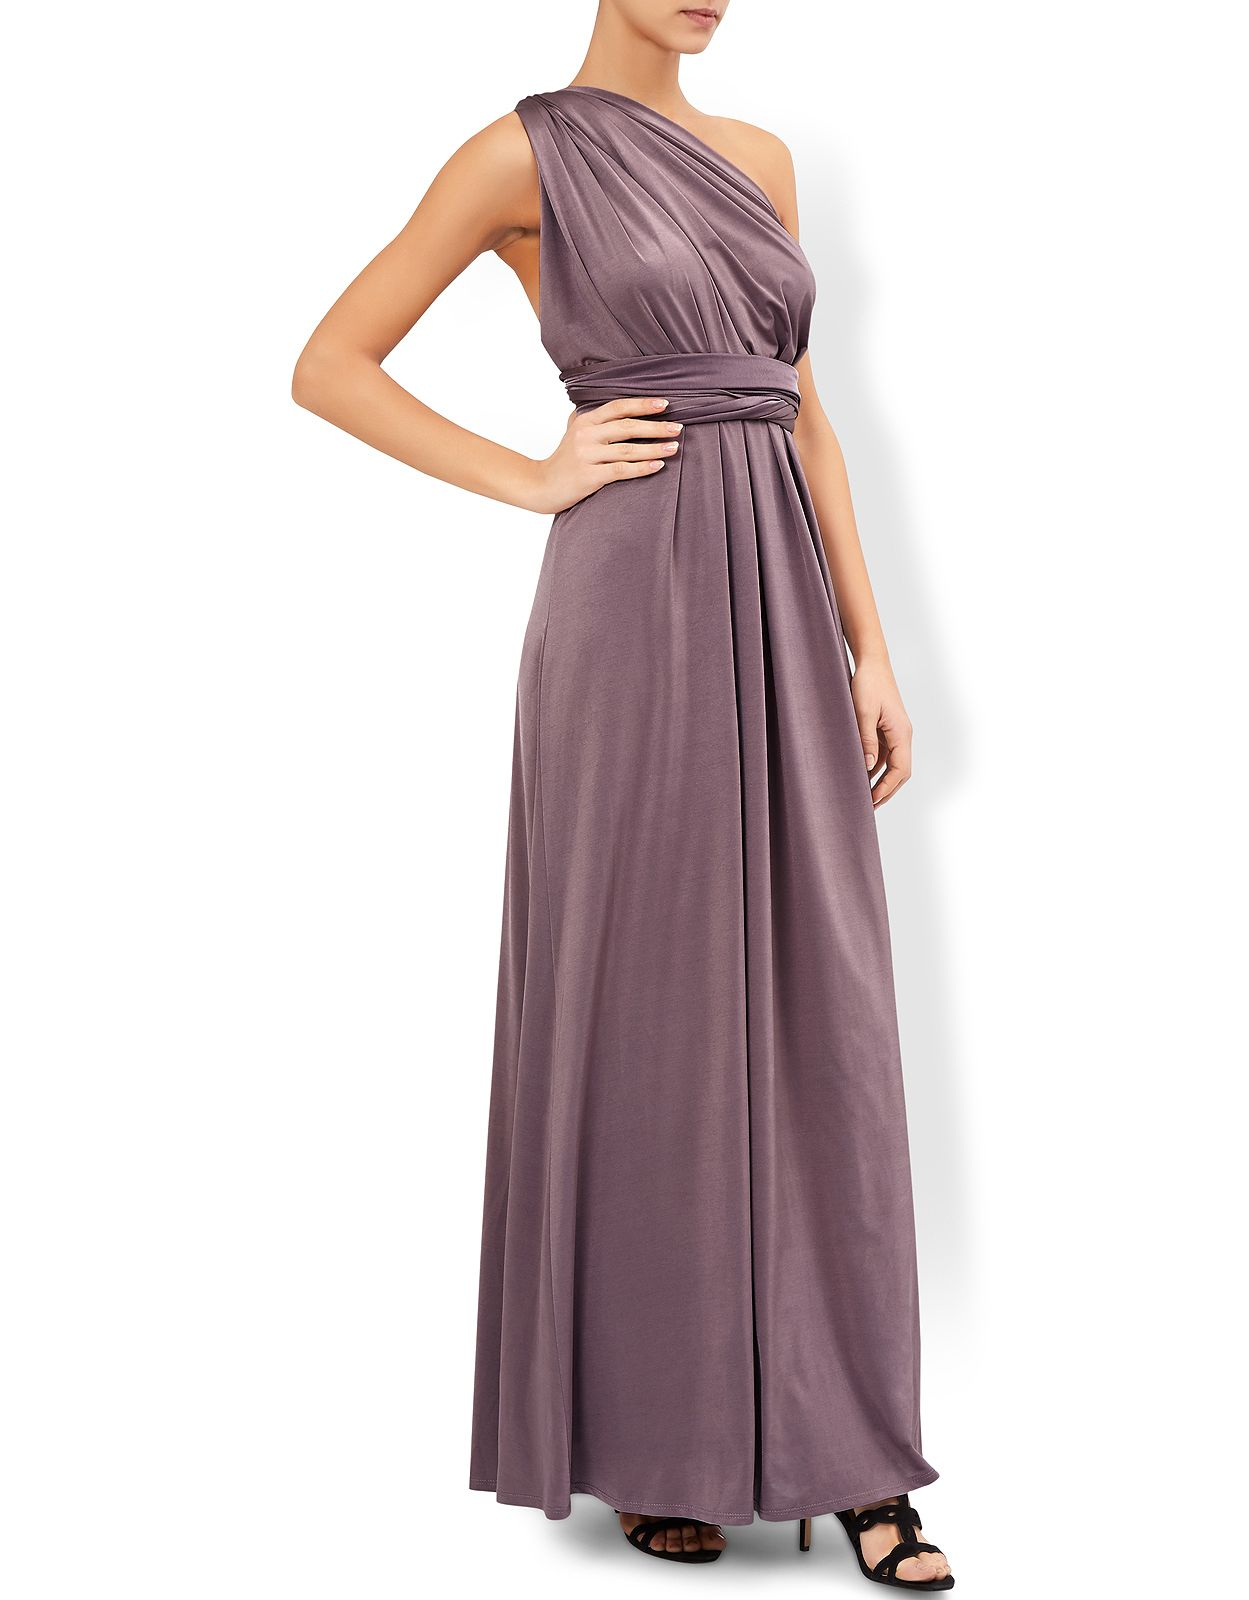 Twist me tie me our garland occasion maxi dress has two sashes twist me tie me our garland occasion maxi dress has two sashes that can be tied in 15 different ways creating bespoke looks to suit any shape ombrellifo Choice Image